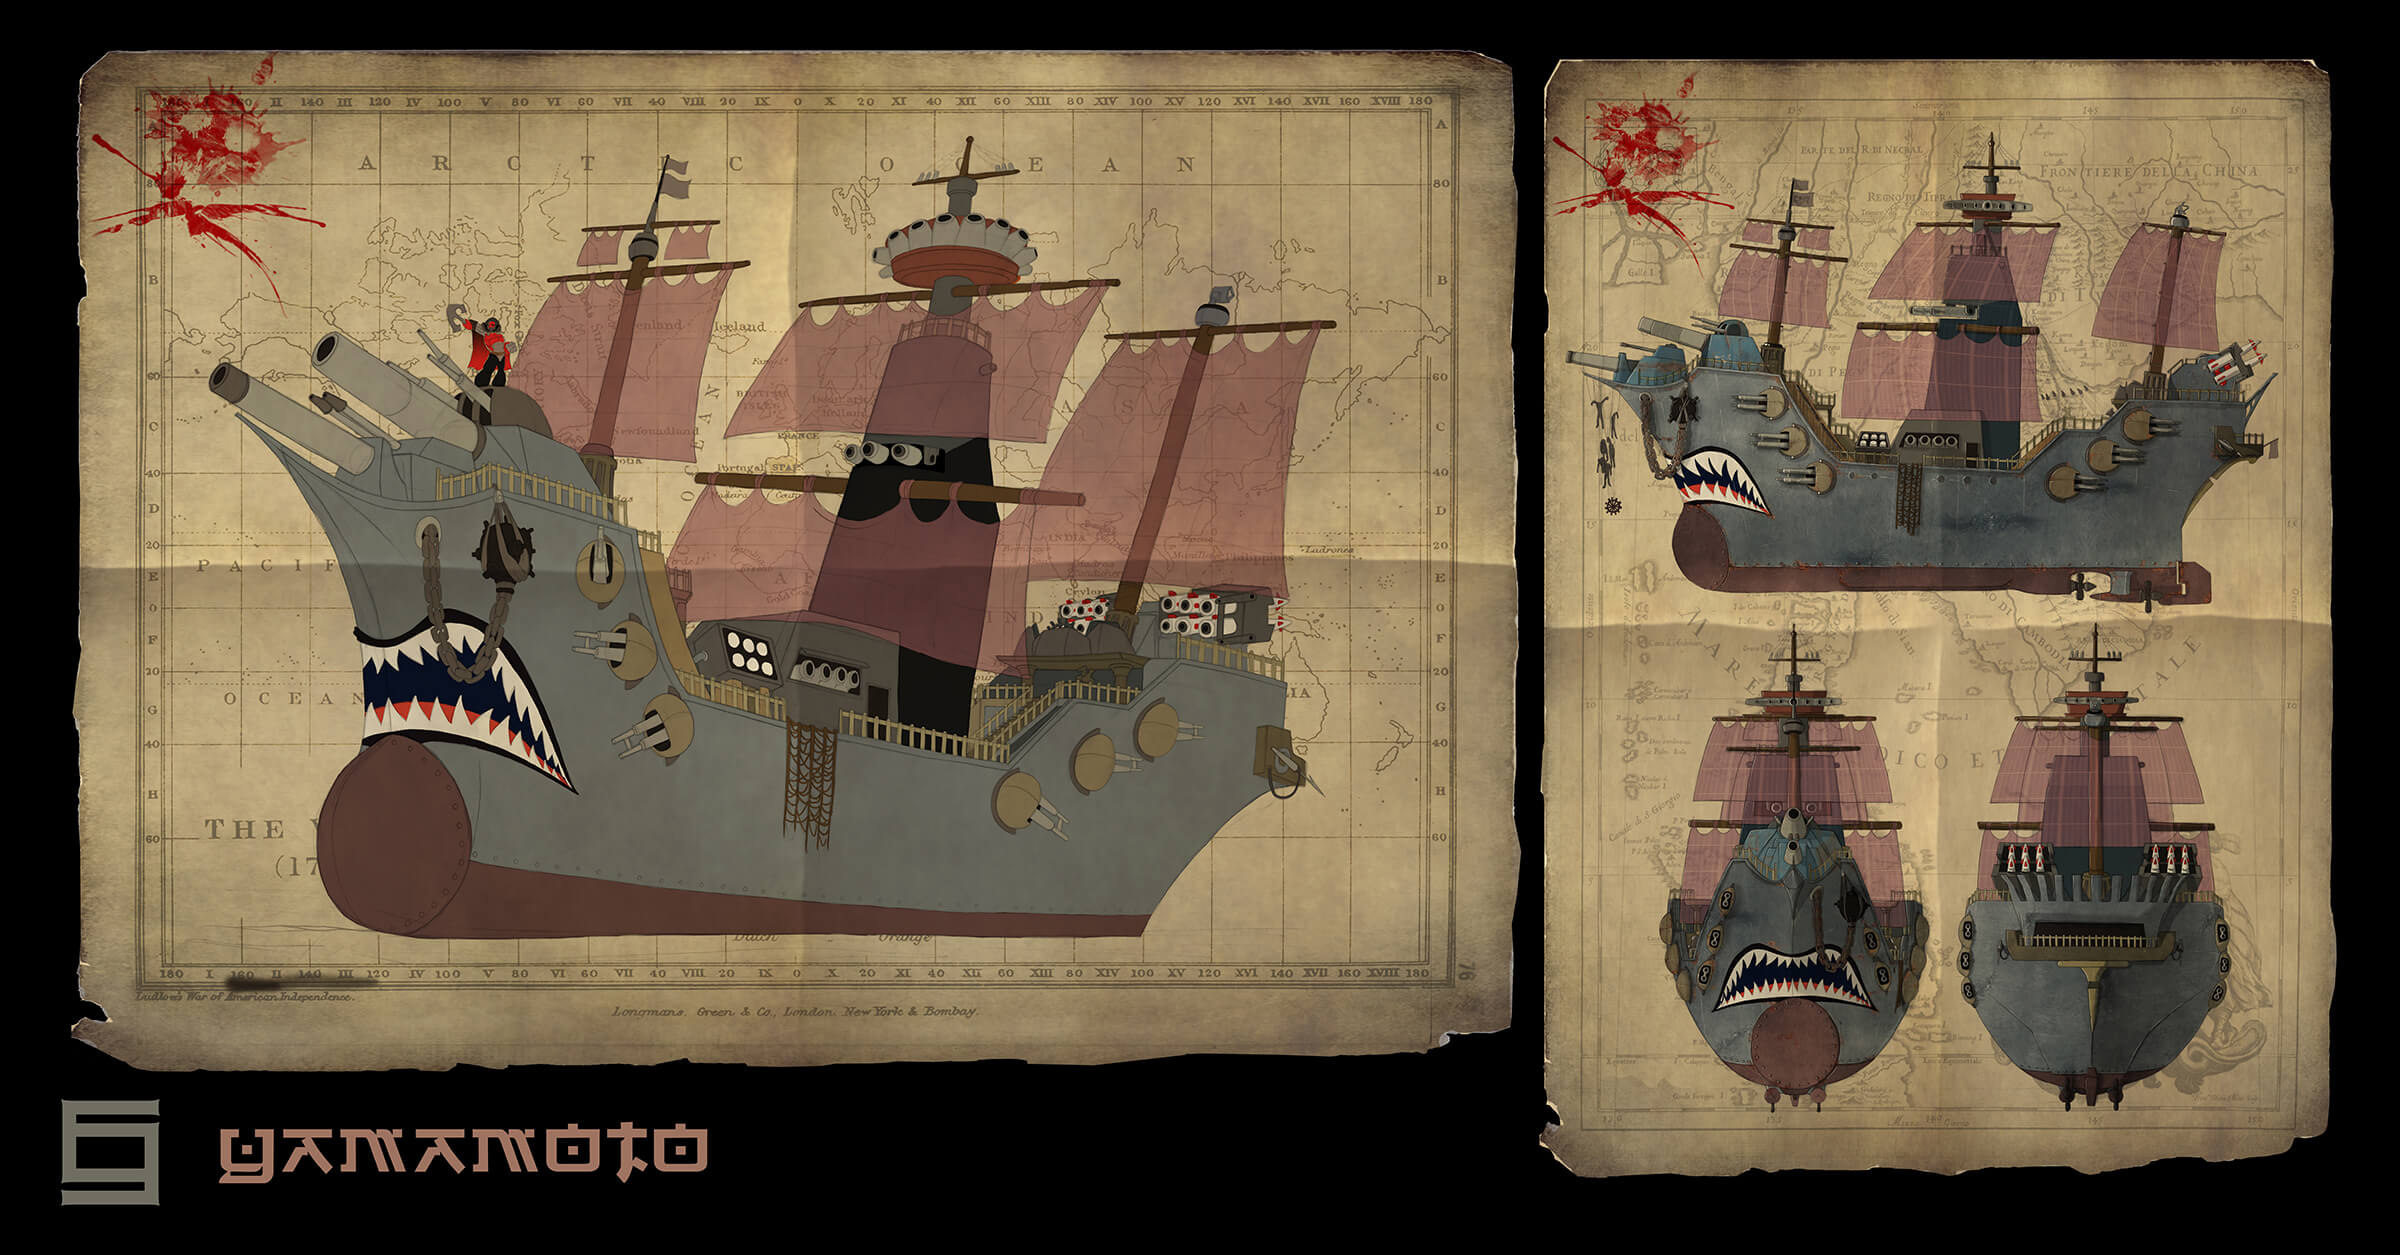 Concept art turnaround of a stylized battleship wielding modern guns and armor, with sails and hull of an older-style vessel.